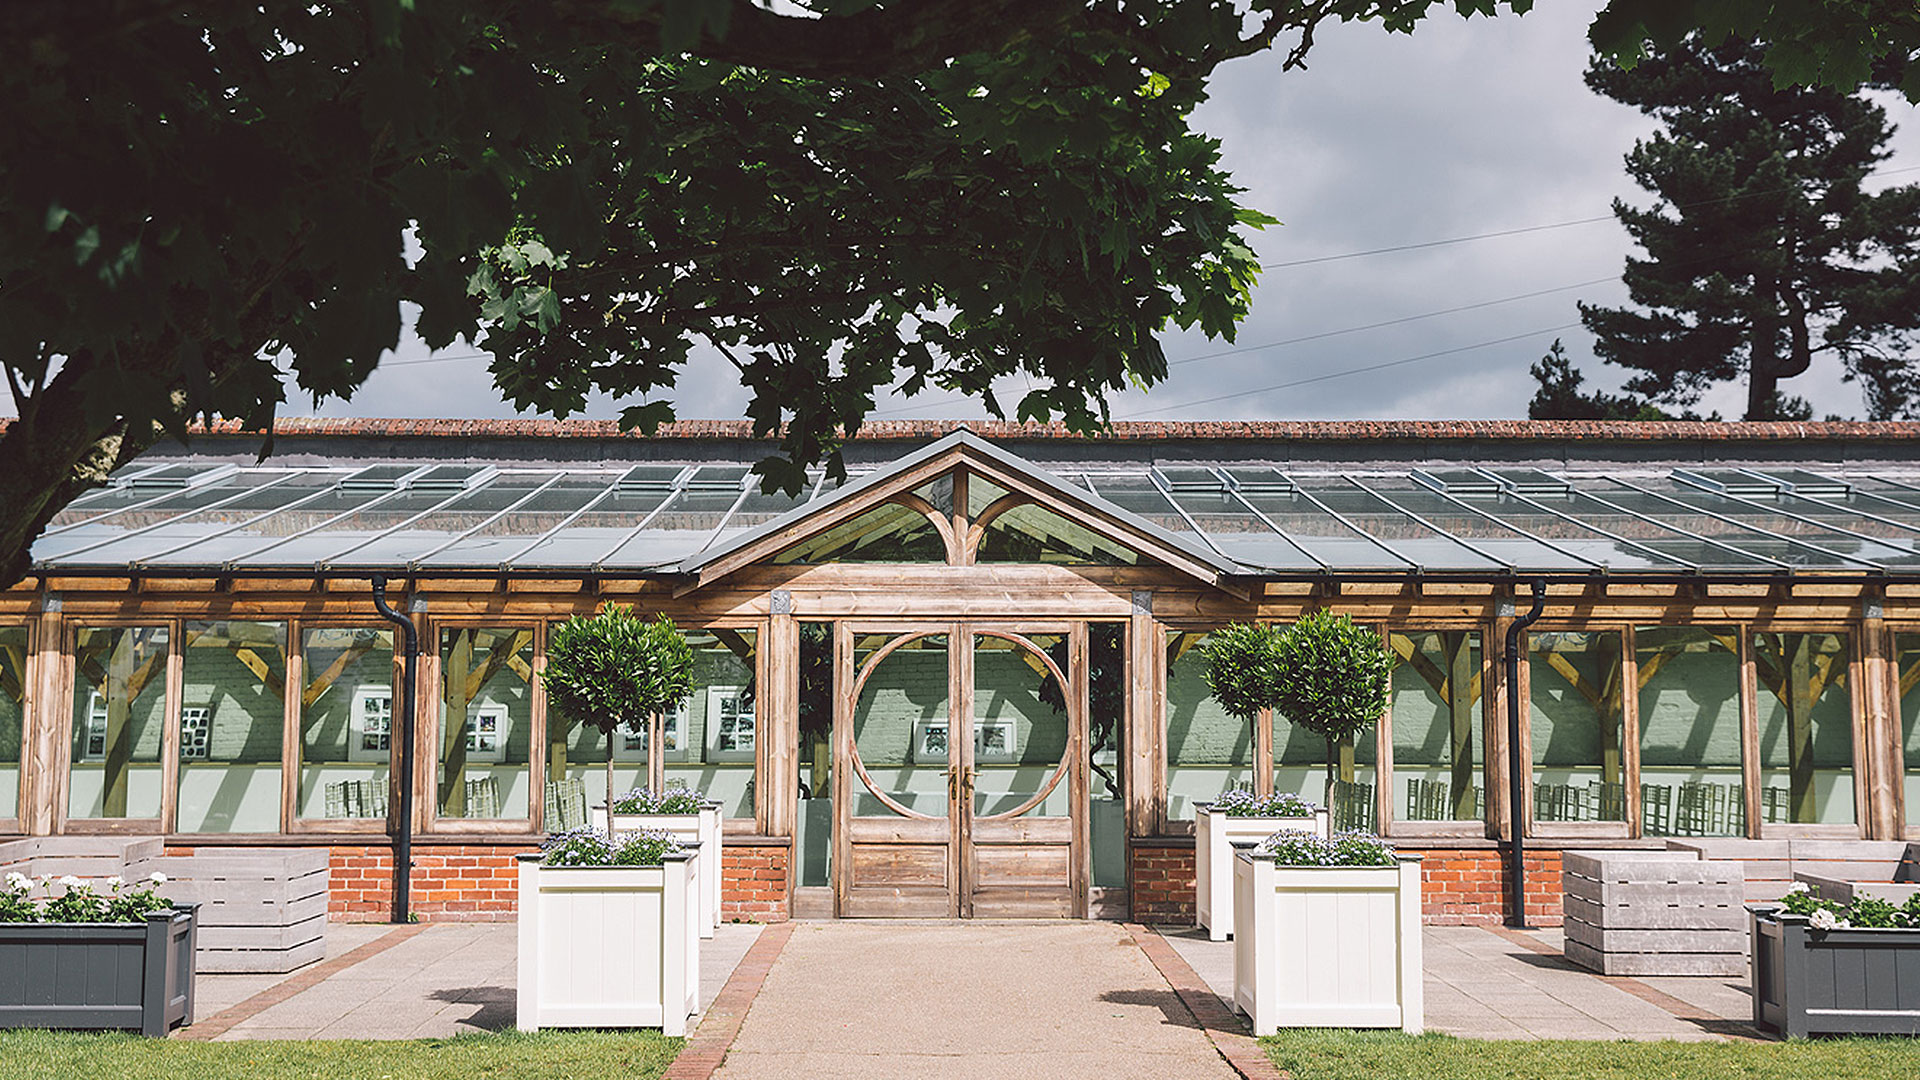 Up to 150 guests can be seated for an intimate wedding ceremony in the Orangery - Essex wedding venues